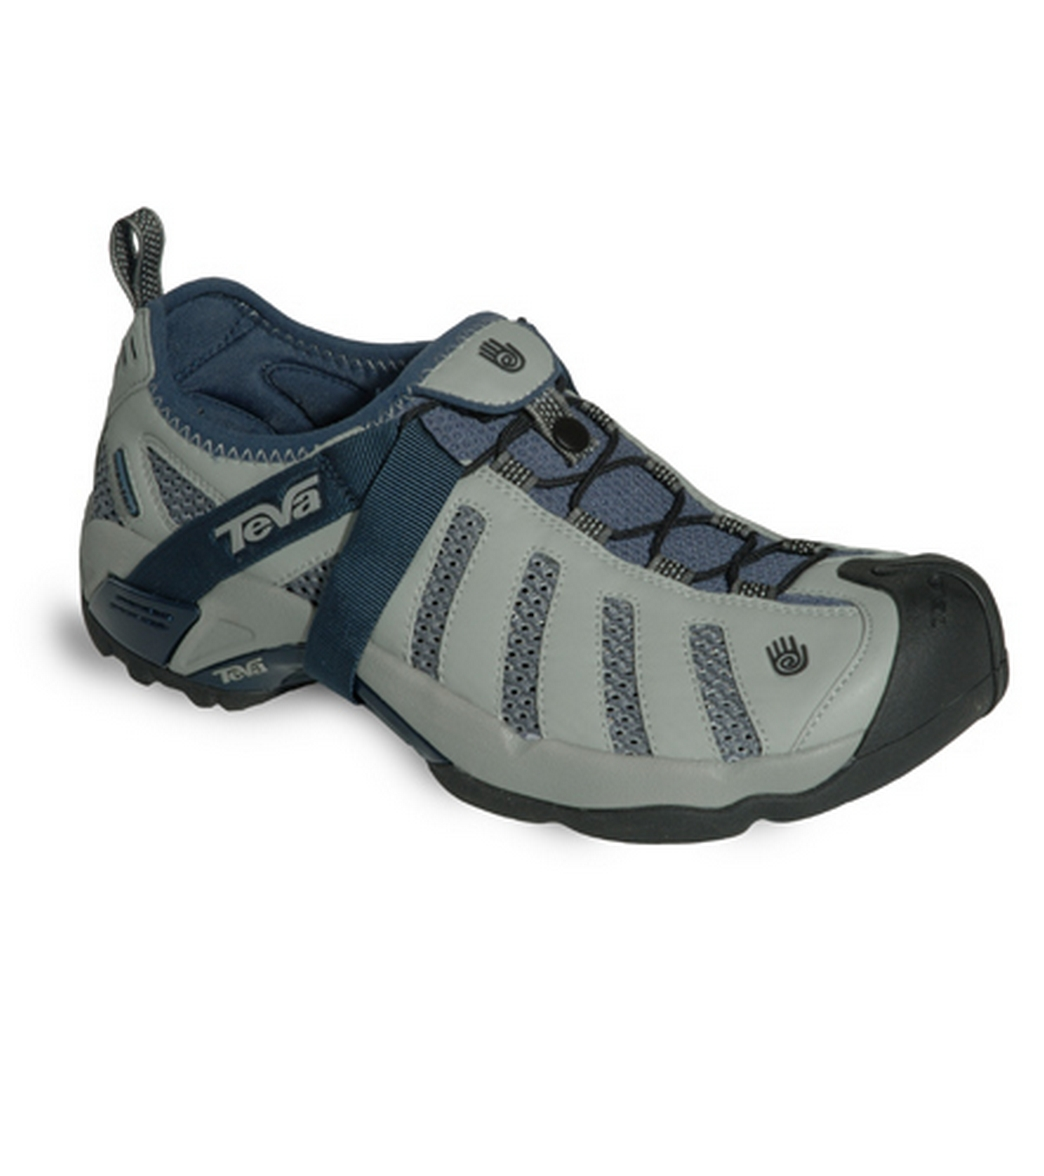 ca6f0133d4a8f3 Teva Men s Sunkosi Water Shoes at SwimOutlet.com - Free Shipping